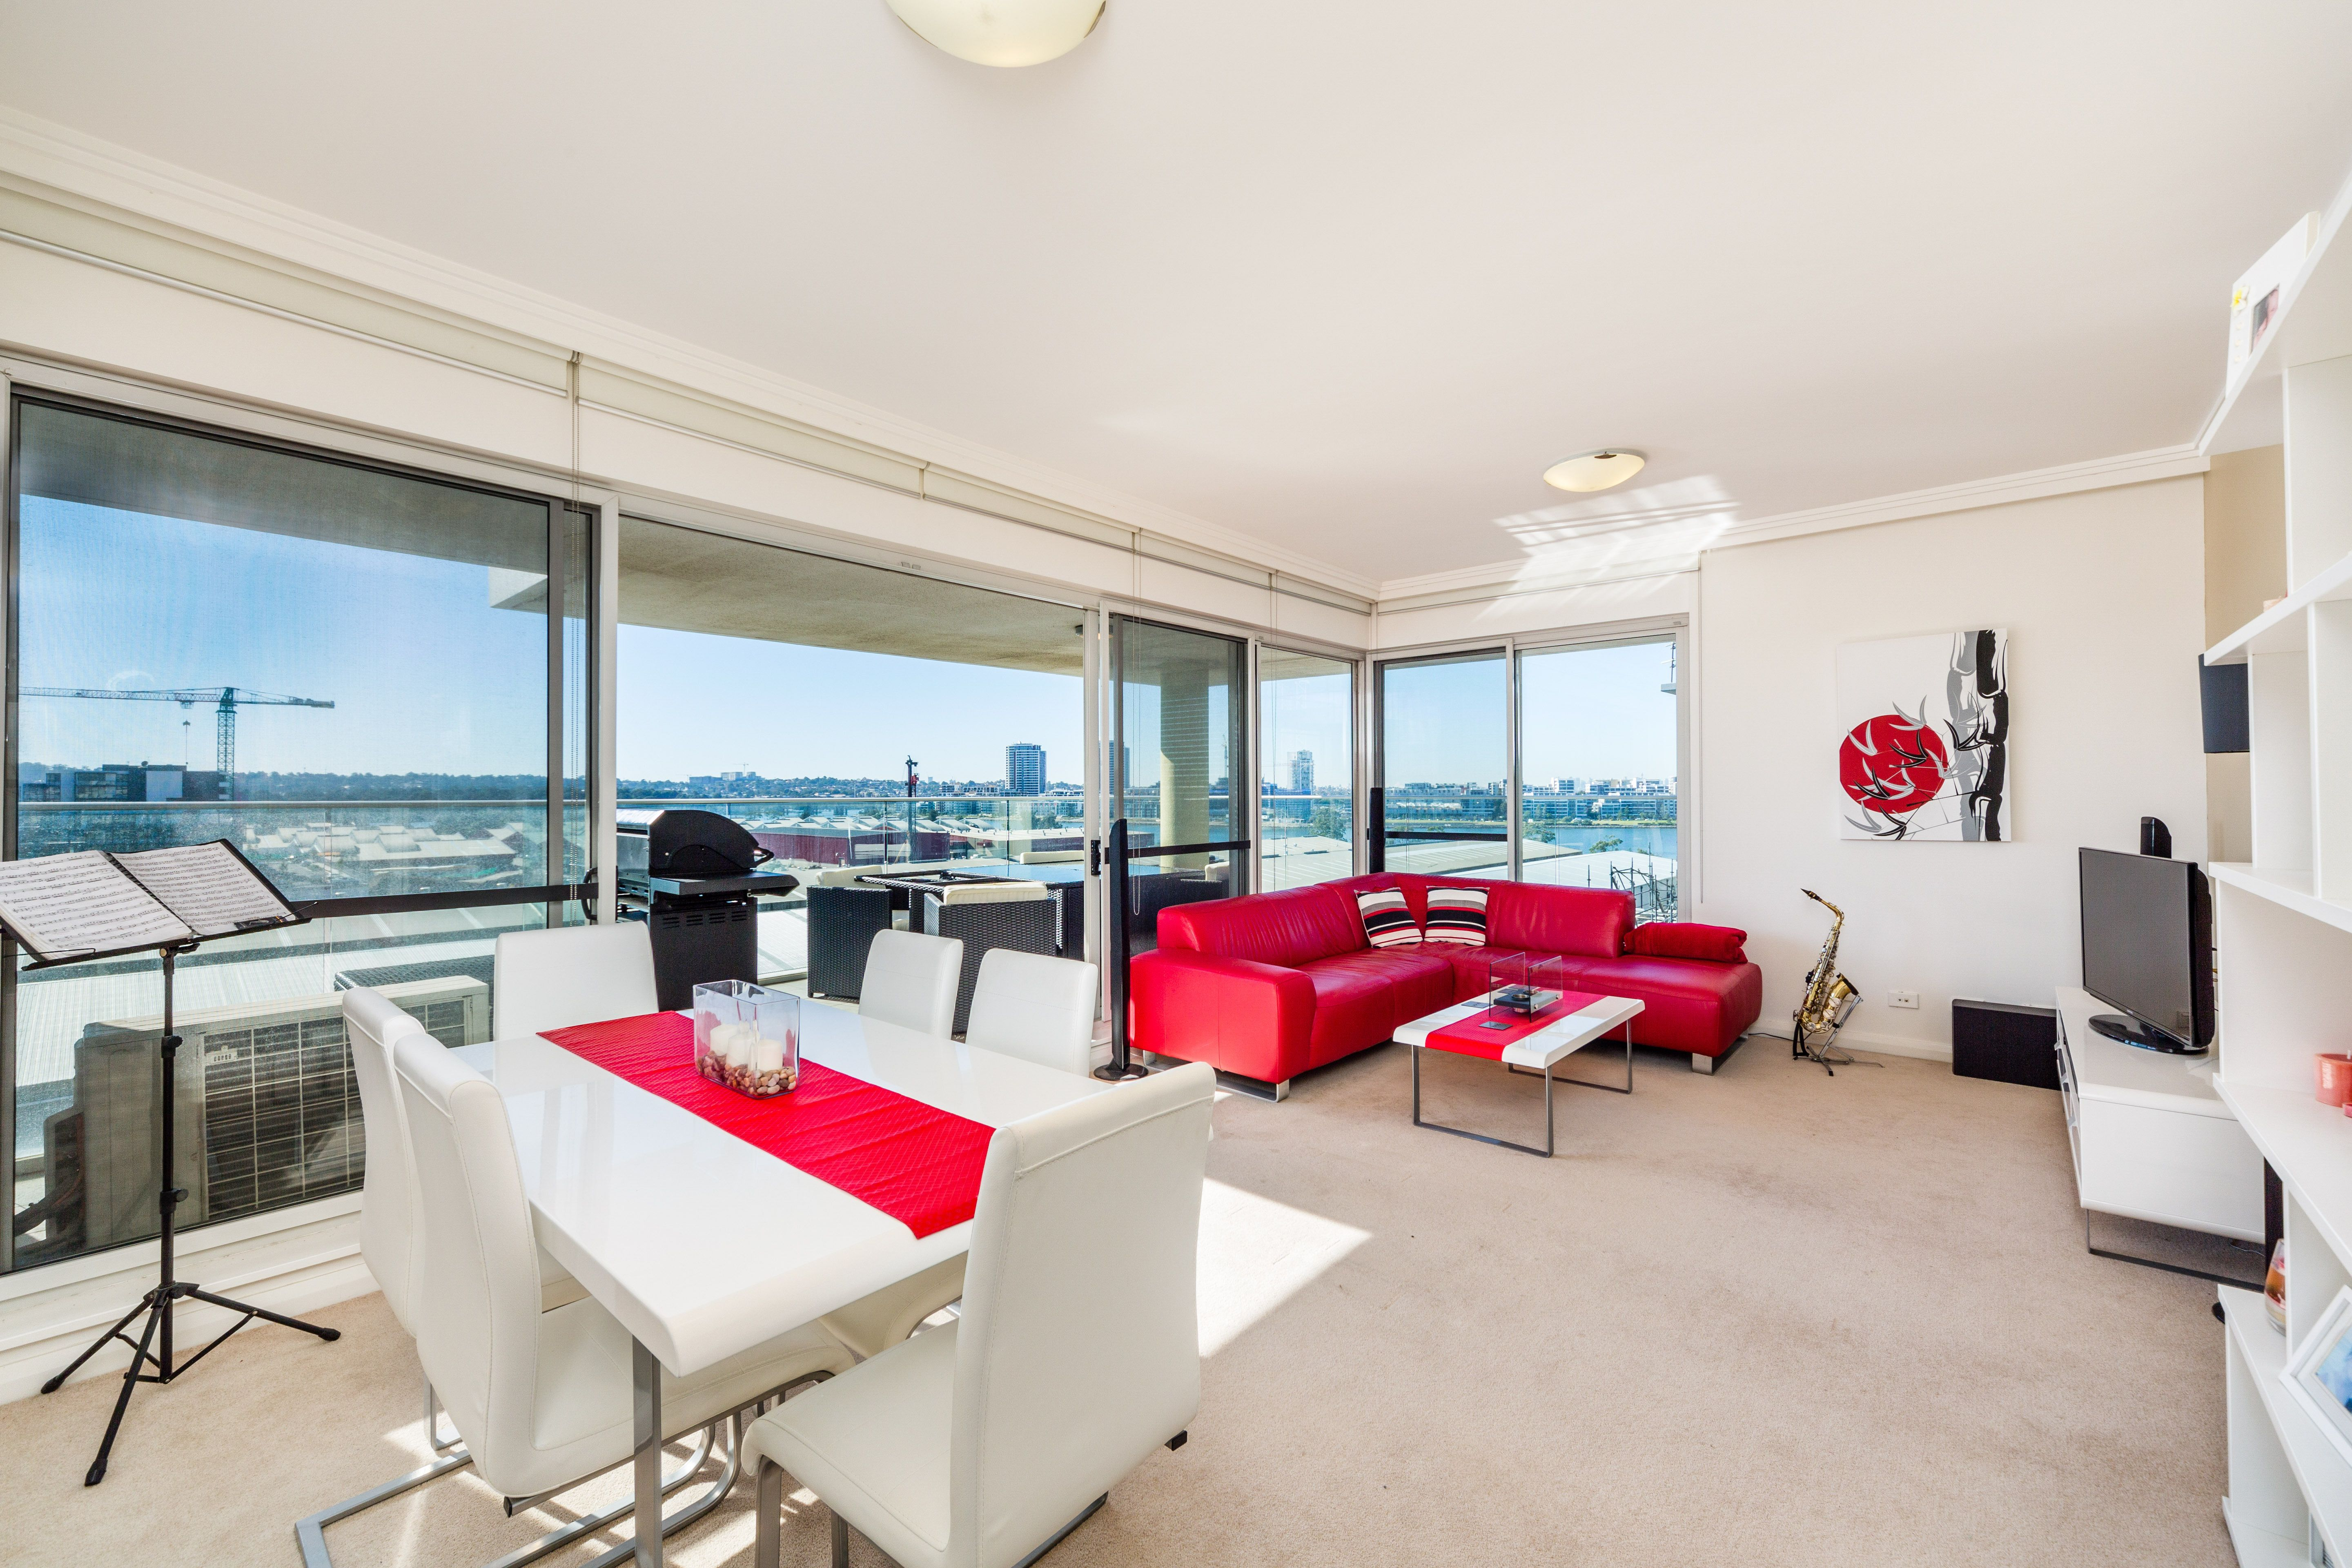 808/6 Nuvolari Place, Wentworth Point NSW 2127